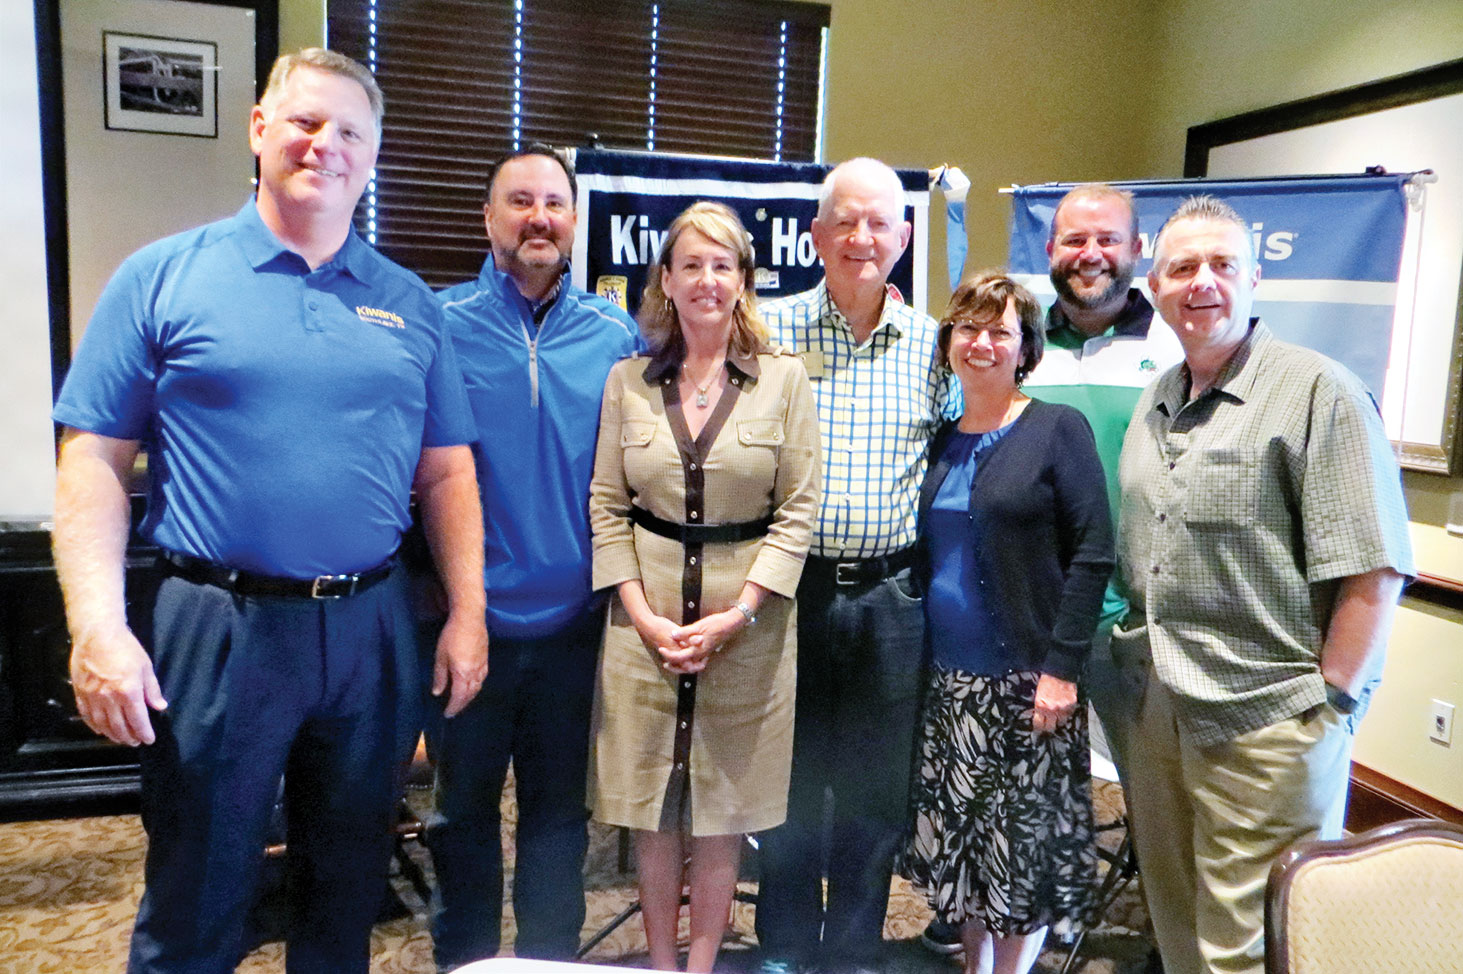 Southlake Kiwanis Club is making a difference.